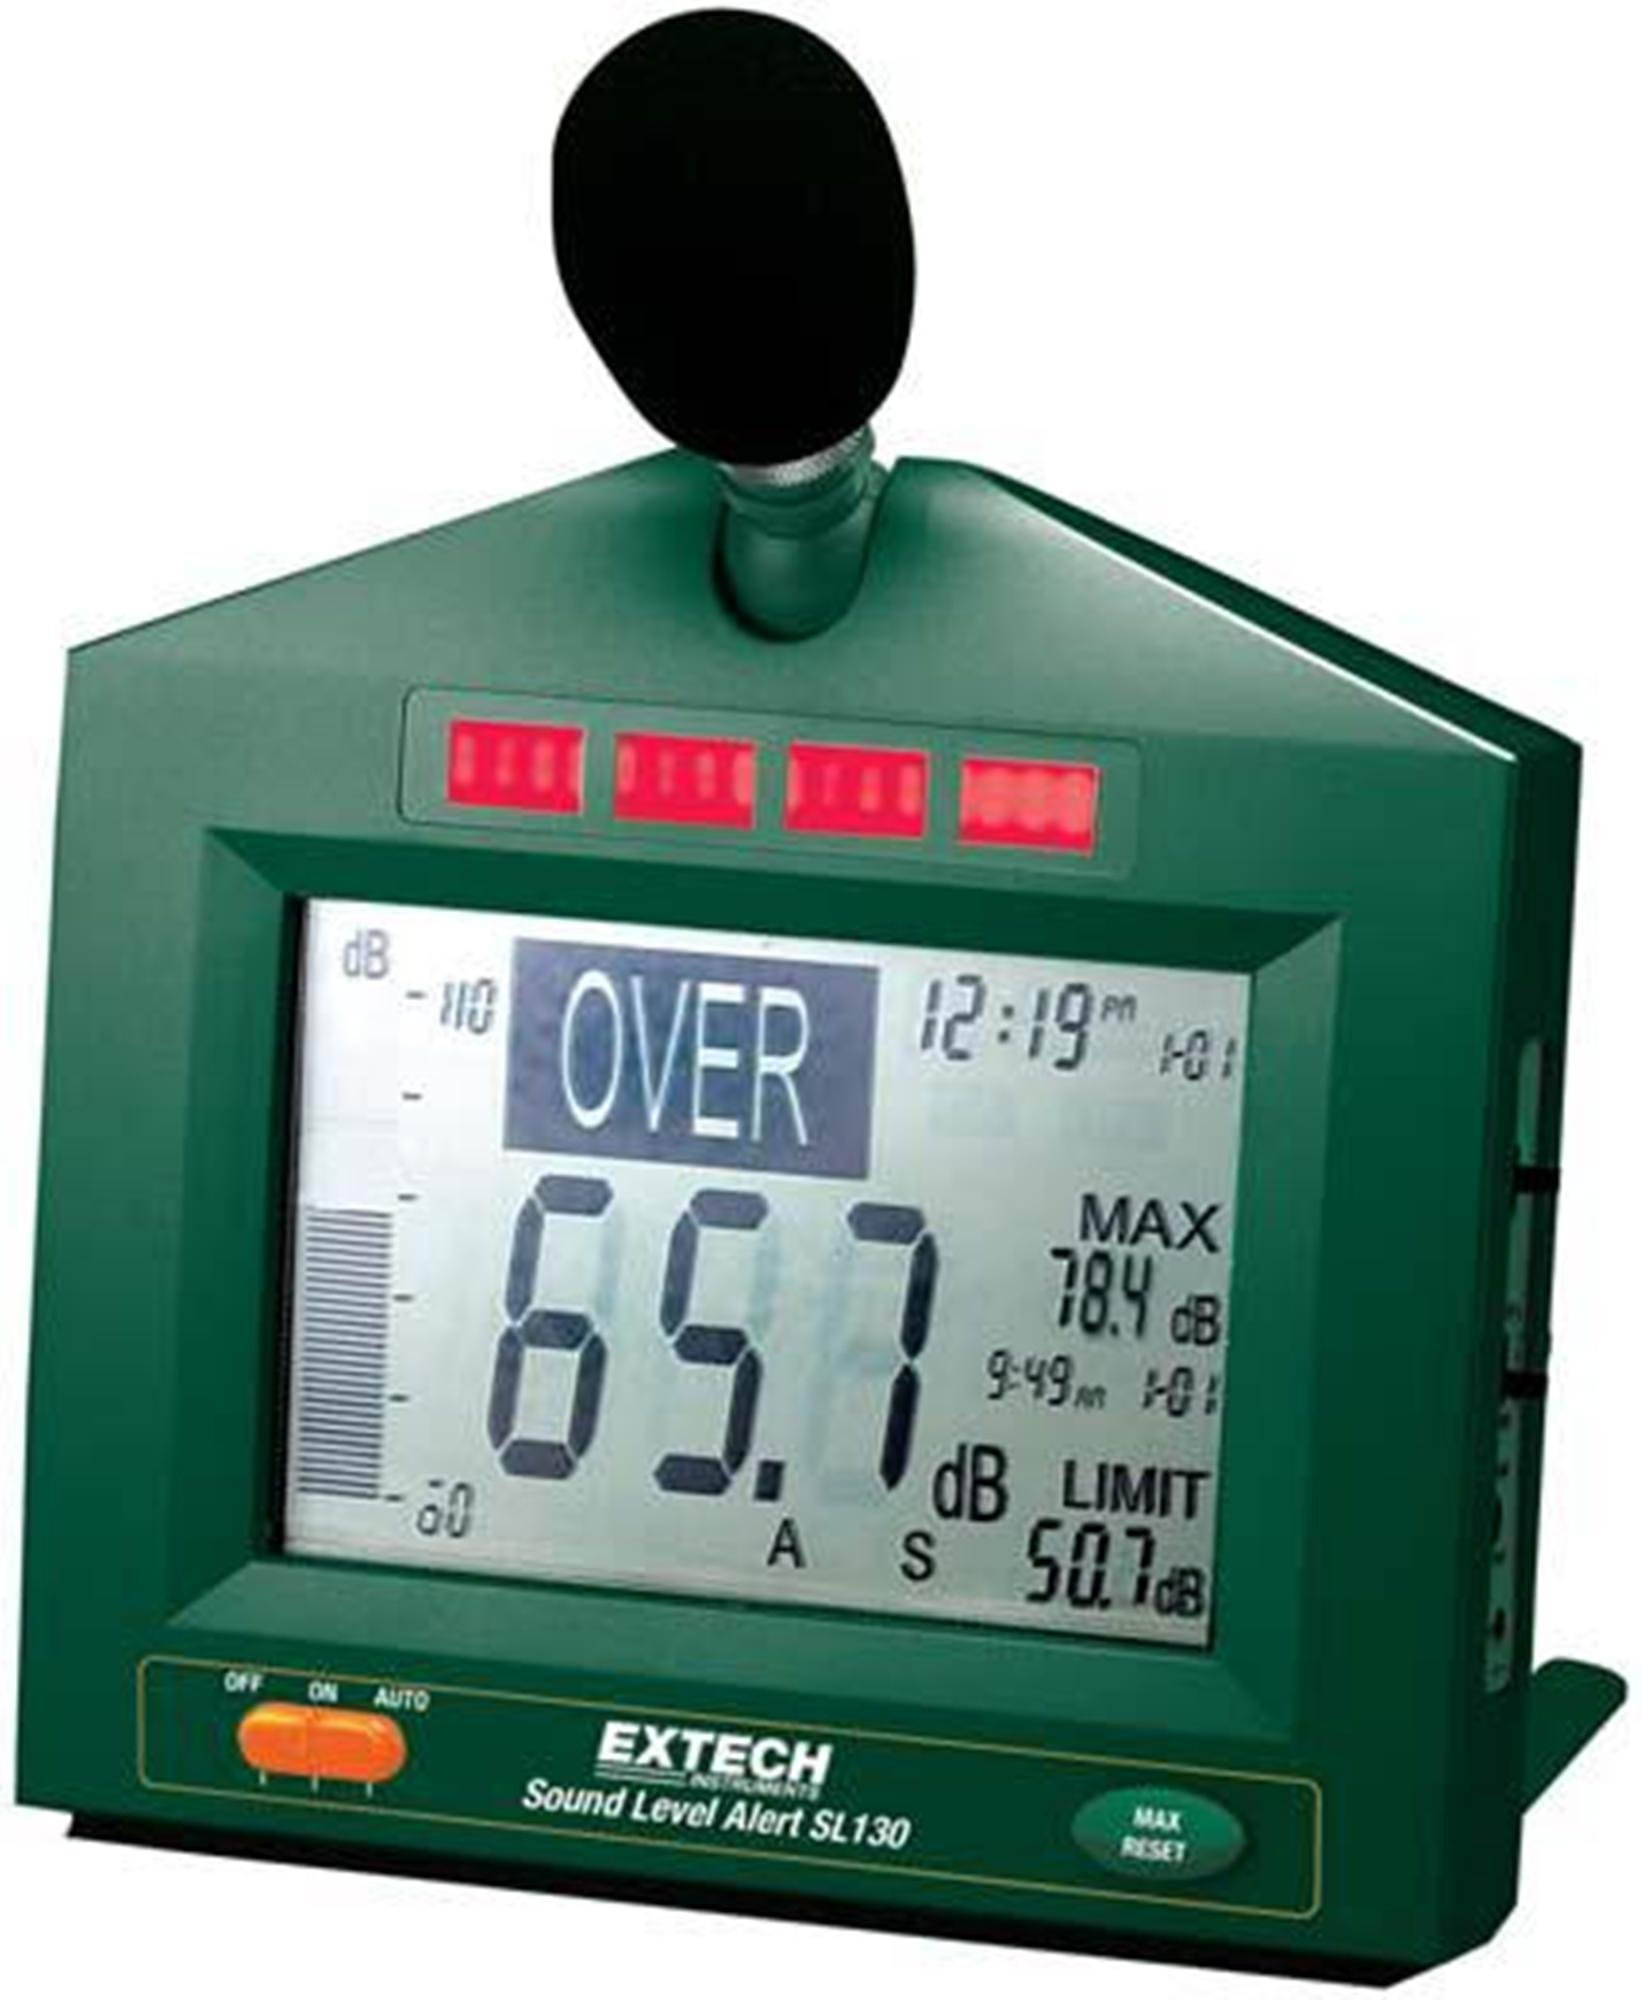 Extech SL130G Sound Level Alert With Alarm (Discontinued by Manufacturer) by Extech